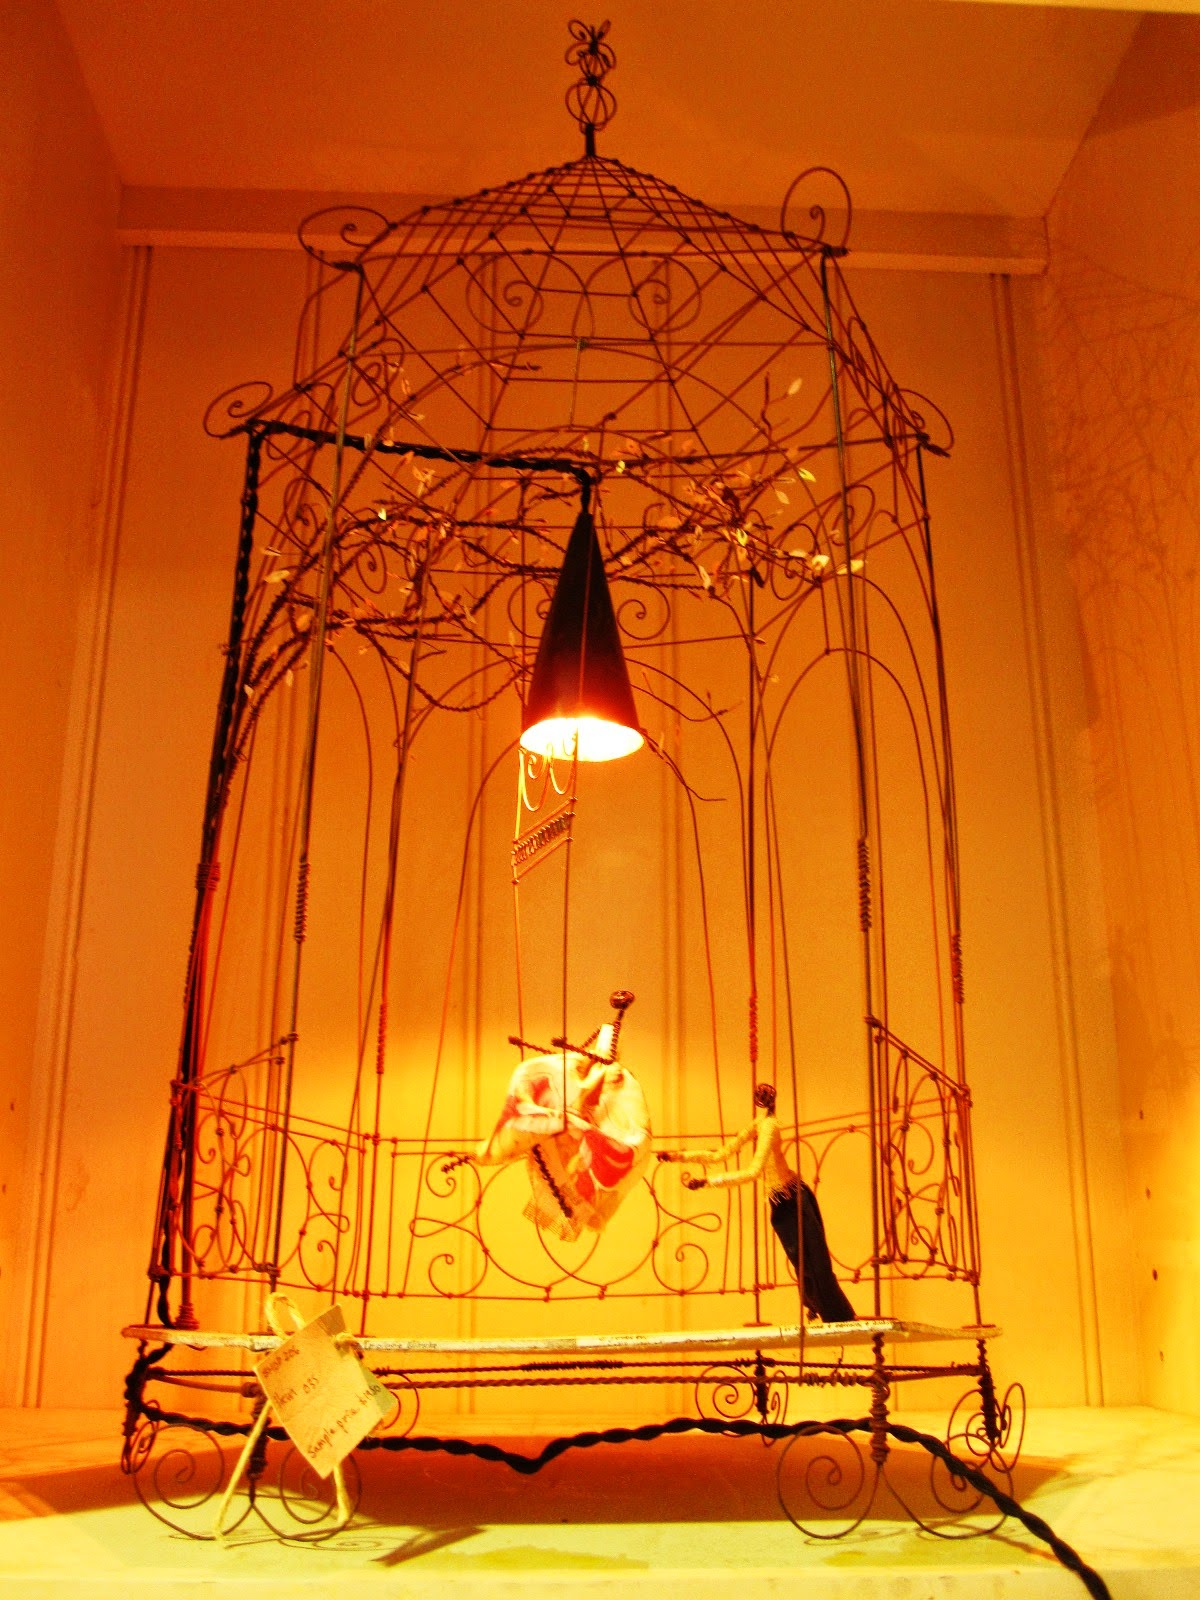 Vintage wire birdcage-shaped sculpture with wire swing and fabric dolls, used as the basis for a lamp.